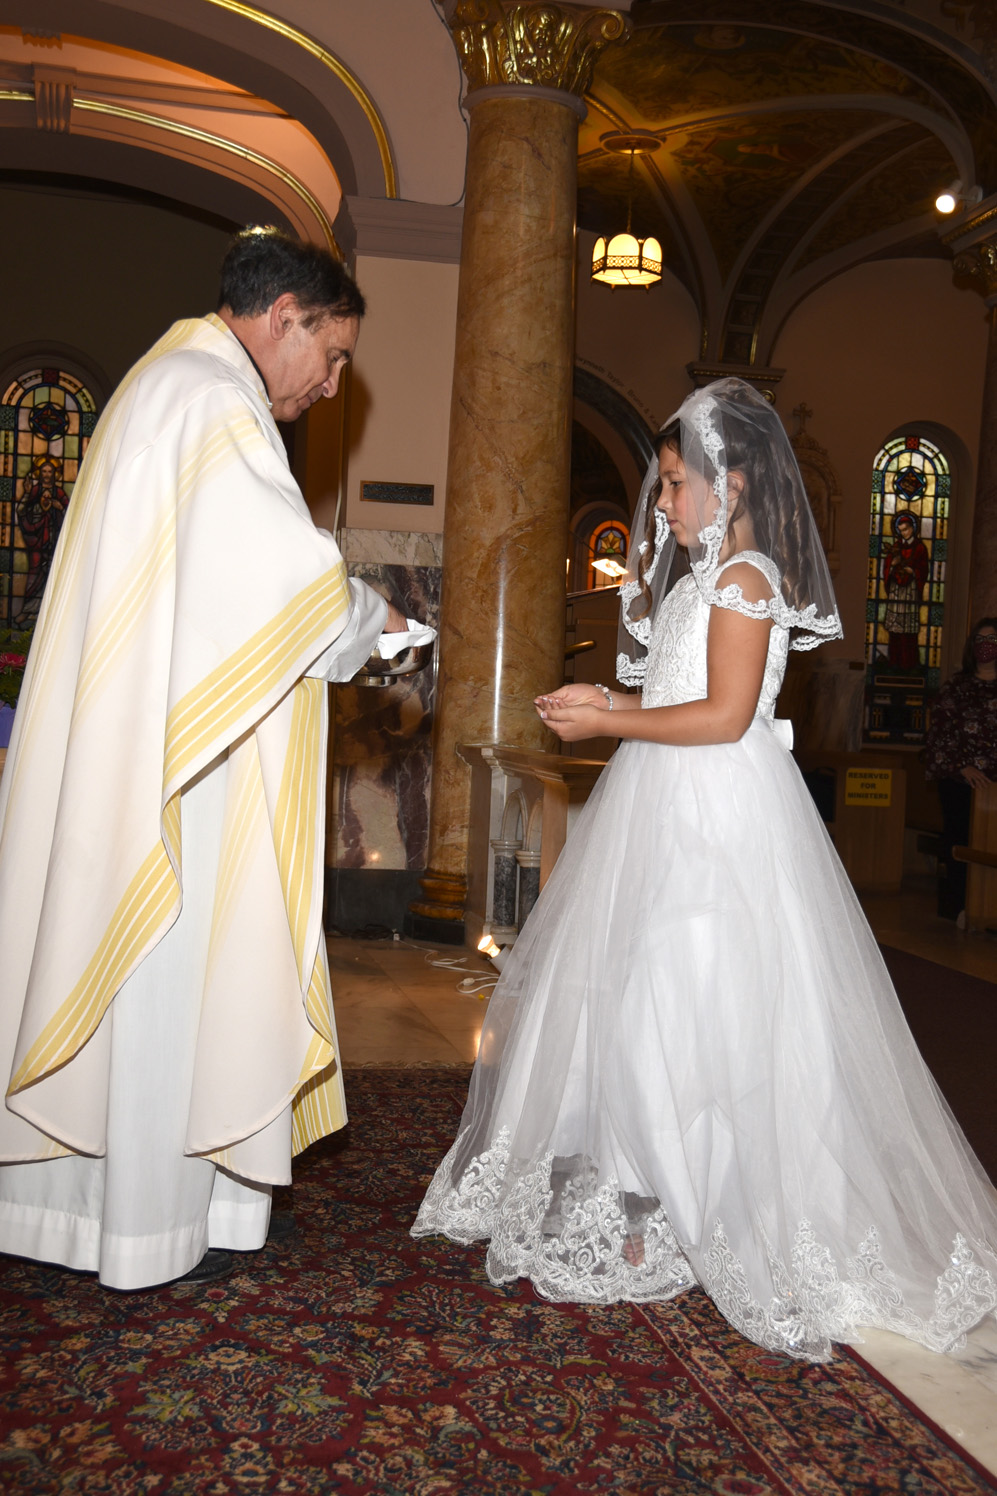 FIRST-COMMUNION-MAY-2-2021-1001001250